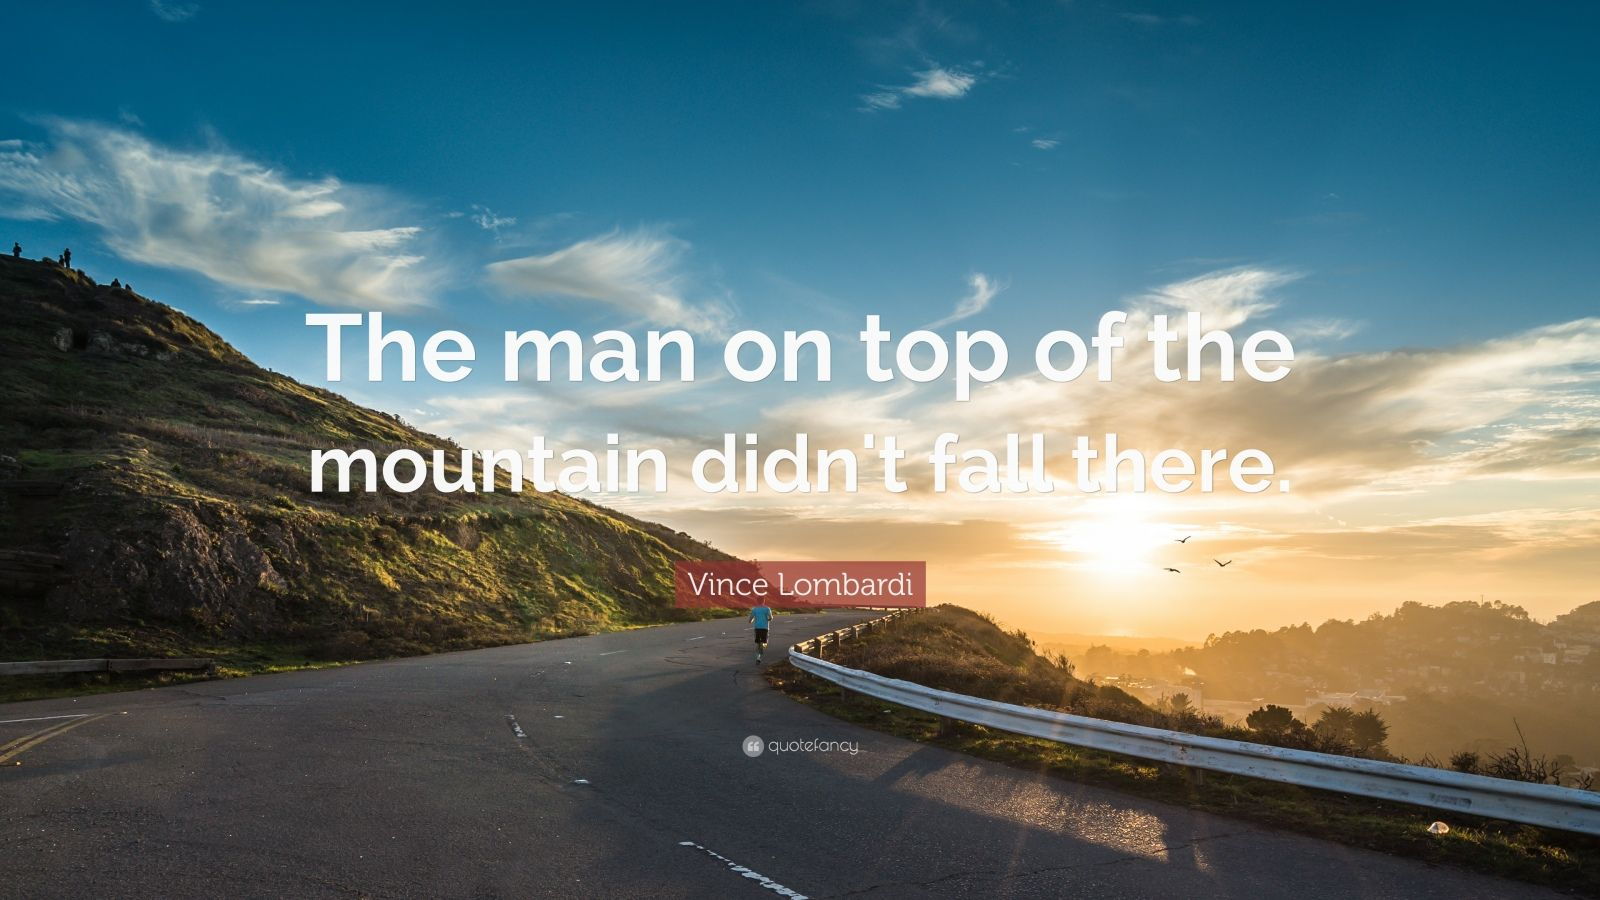 Fall Wallpaper Vince Lombardi Quote The Man On Top Of The Mountain Didn